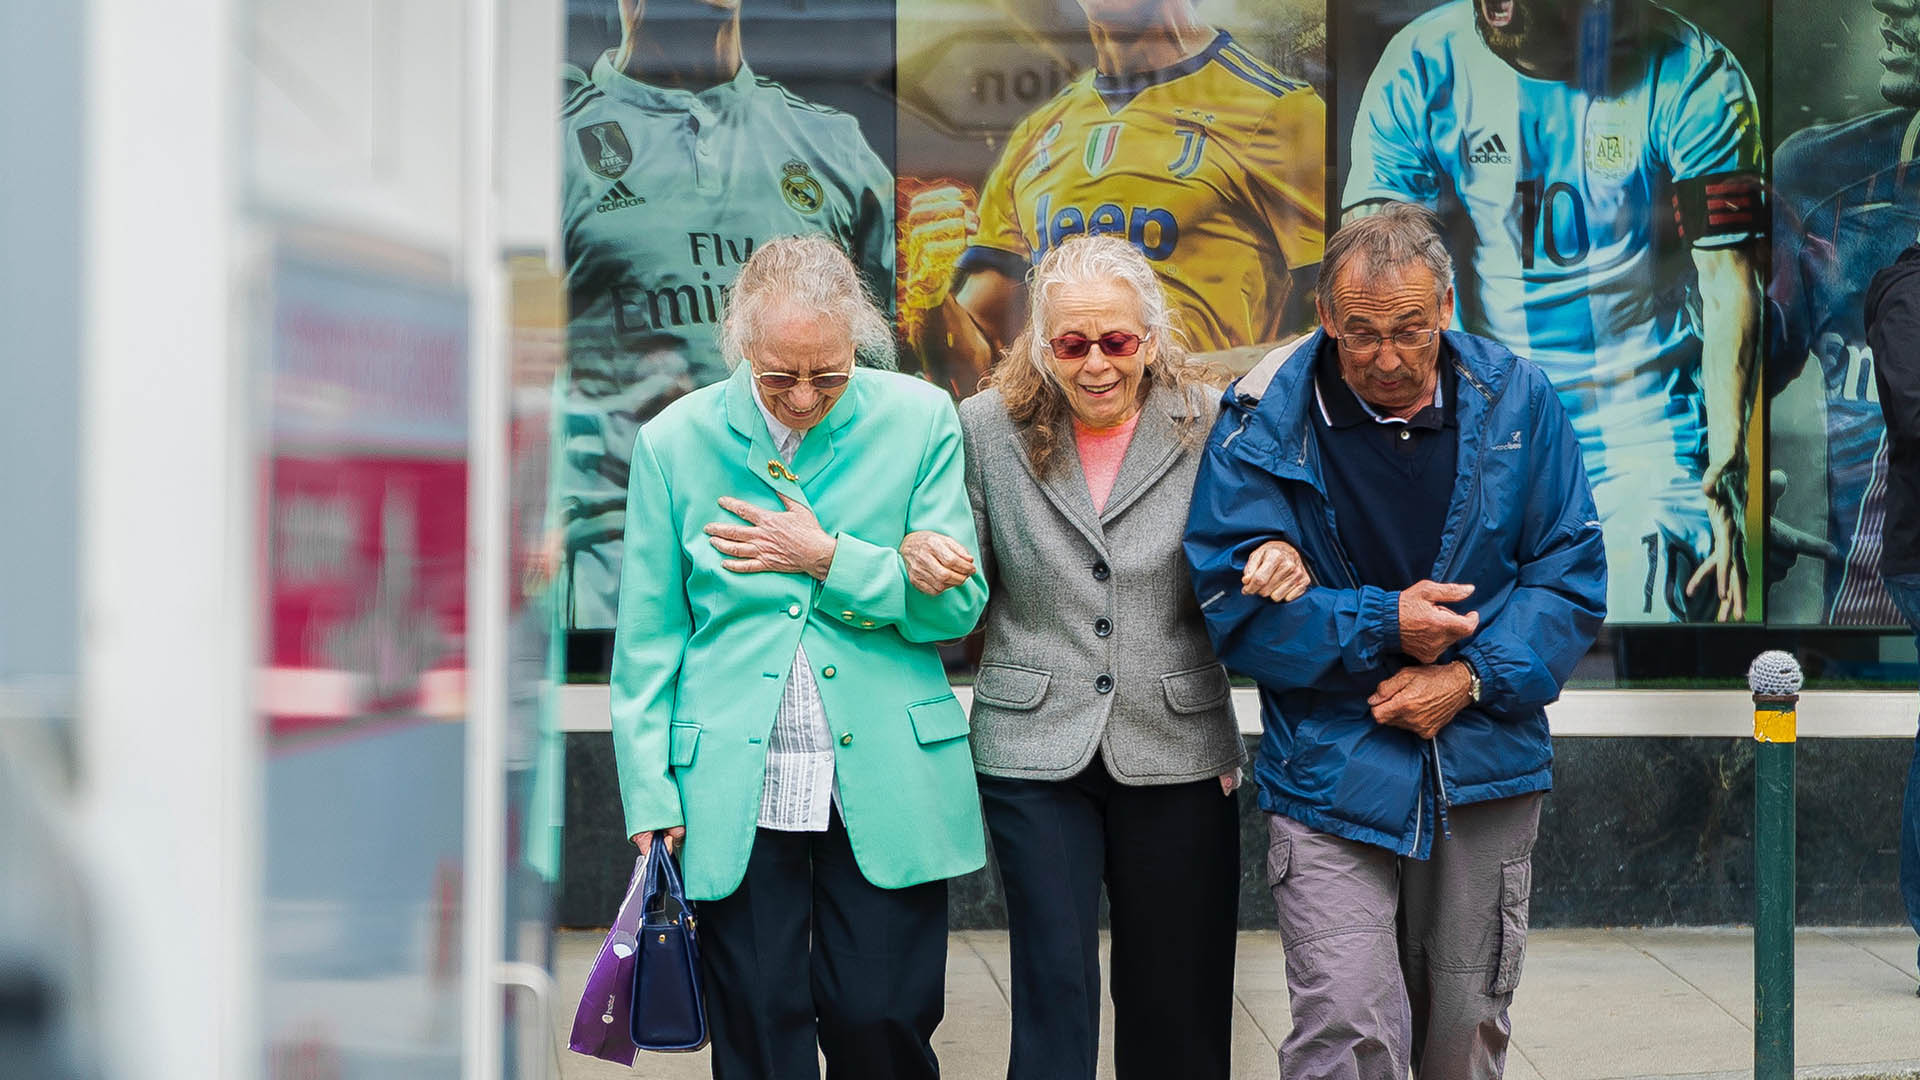 three older people linking arms and walking down the street